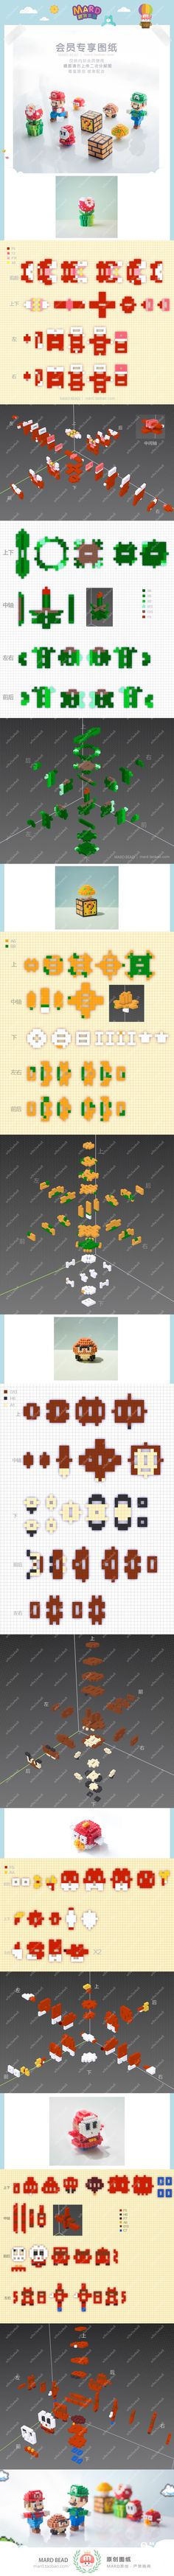 Easy Perler Bead Patterns, Melty Bead Patterns, Perler Bead Templates, Beading Patterns, Perler Bead Disney, Diy Perler Beads, Perler Bead Art, Hamma Beads 3d, Fuse Beads